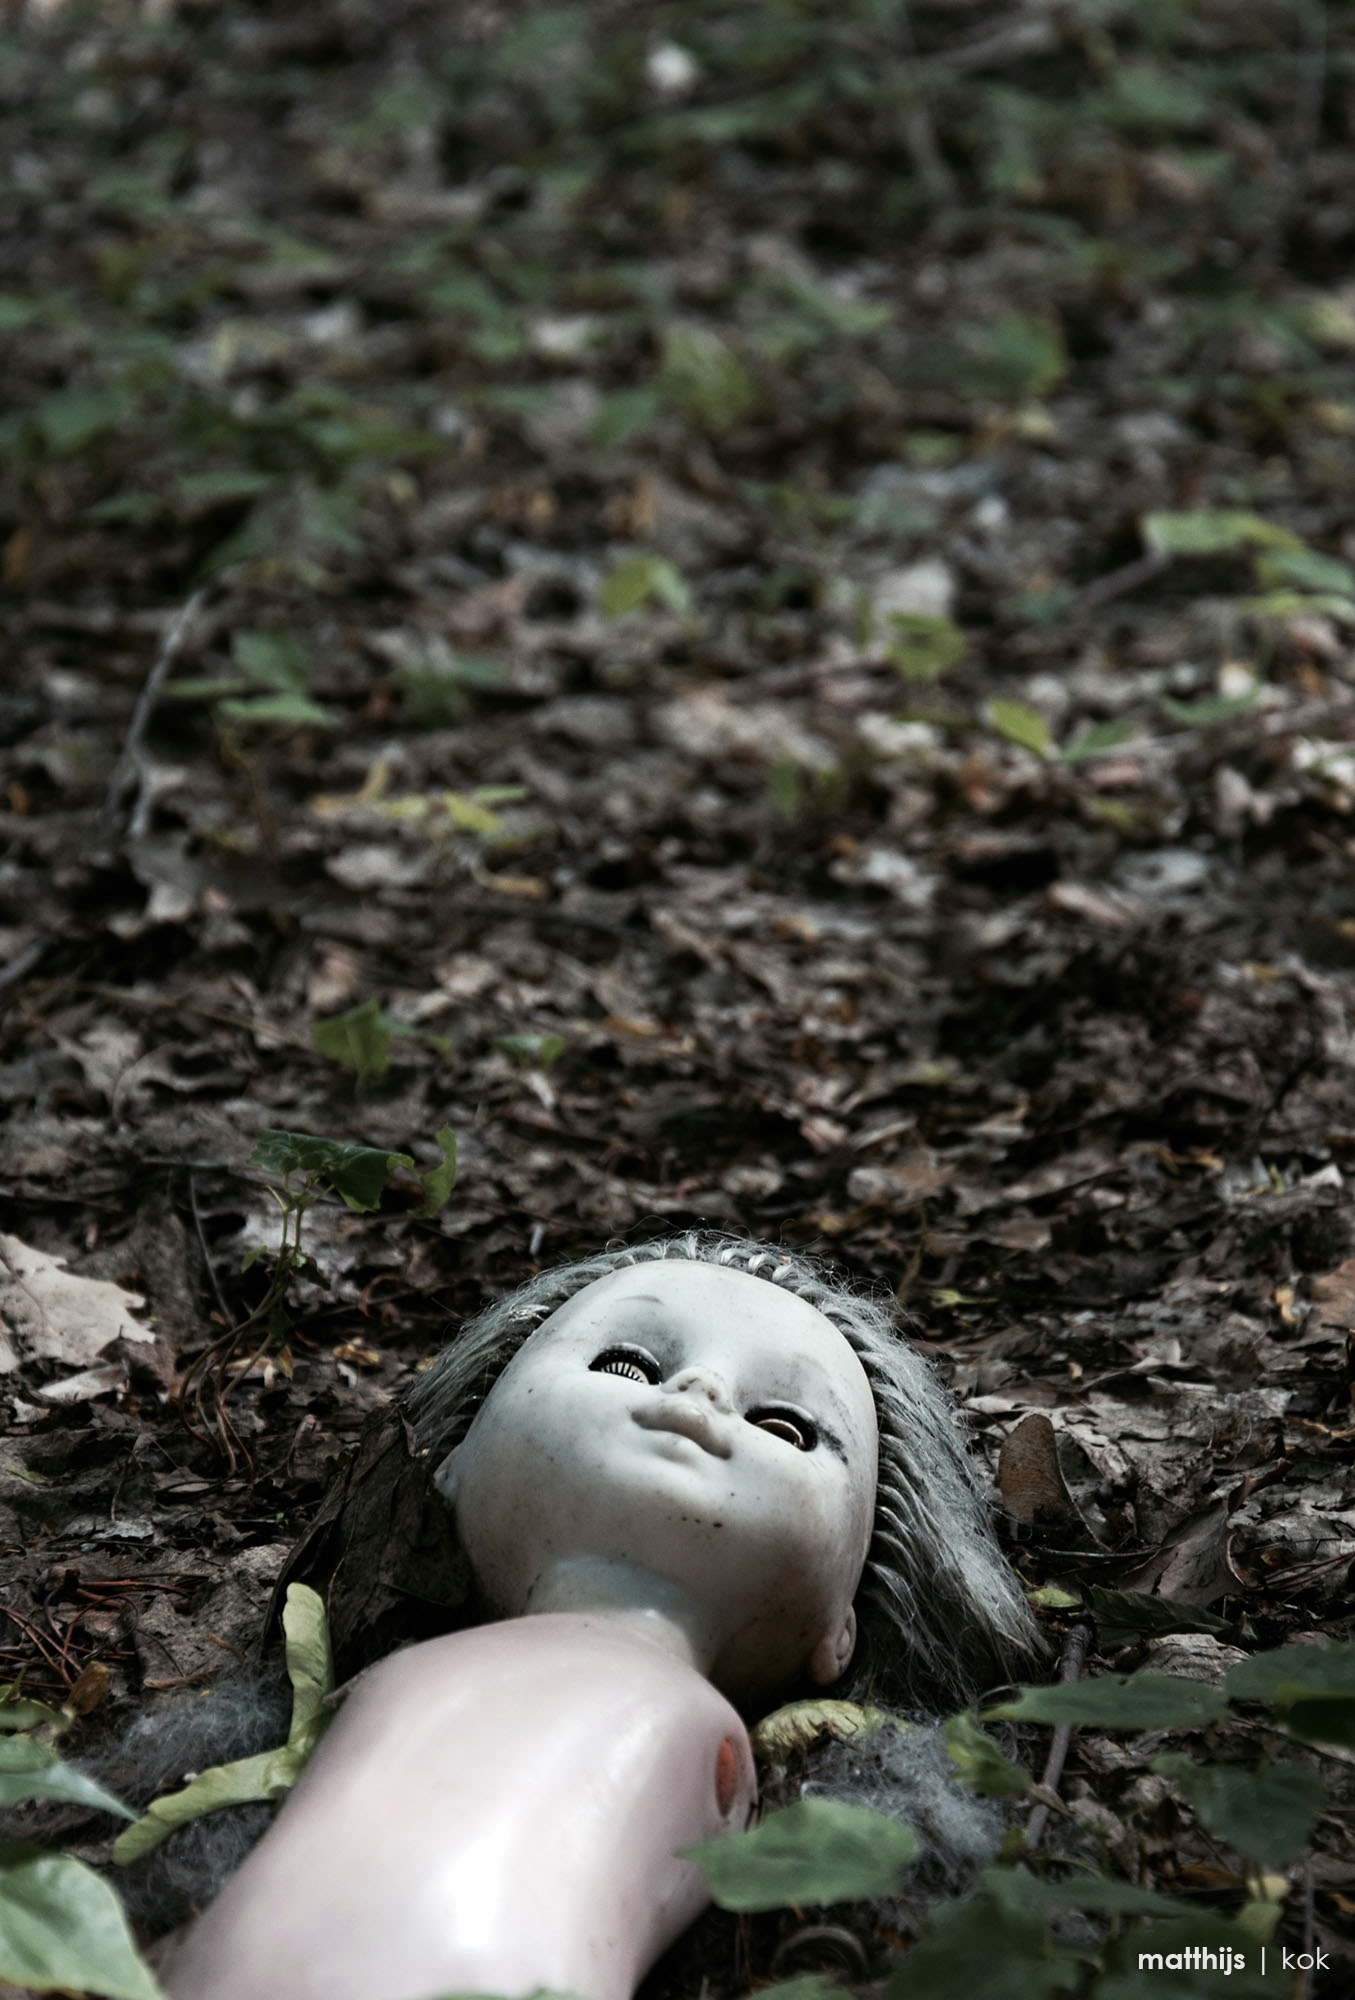 Doll, Pripyat | Photo by Matthijs Kok